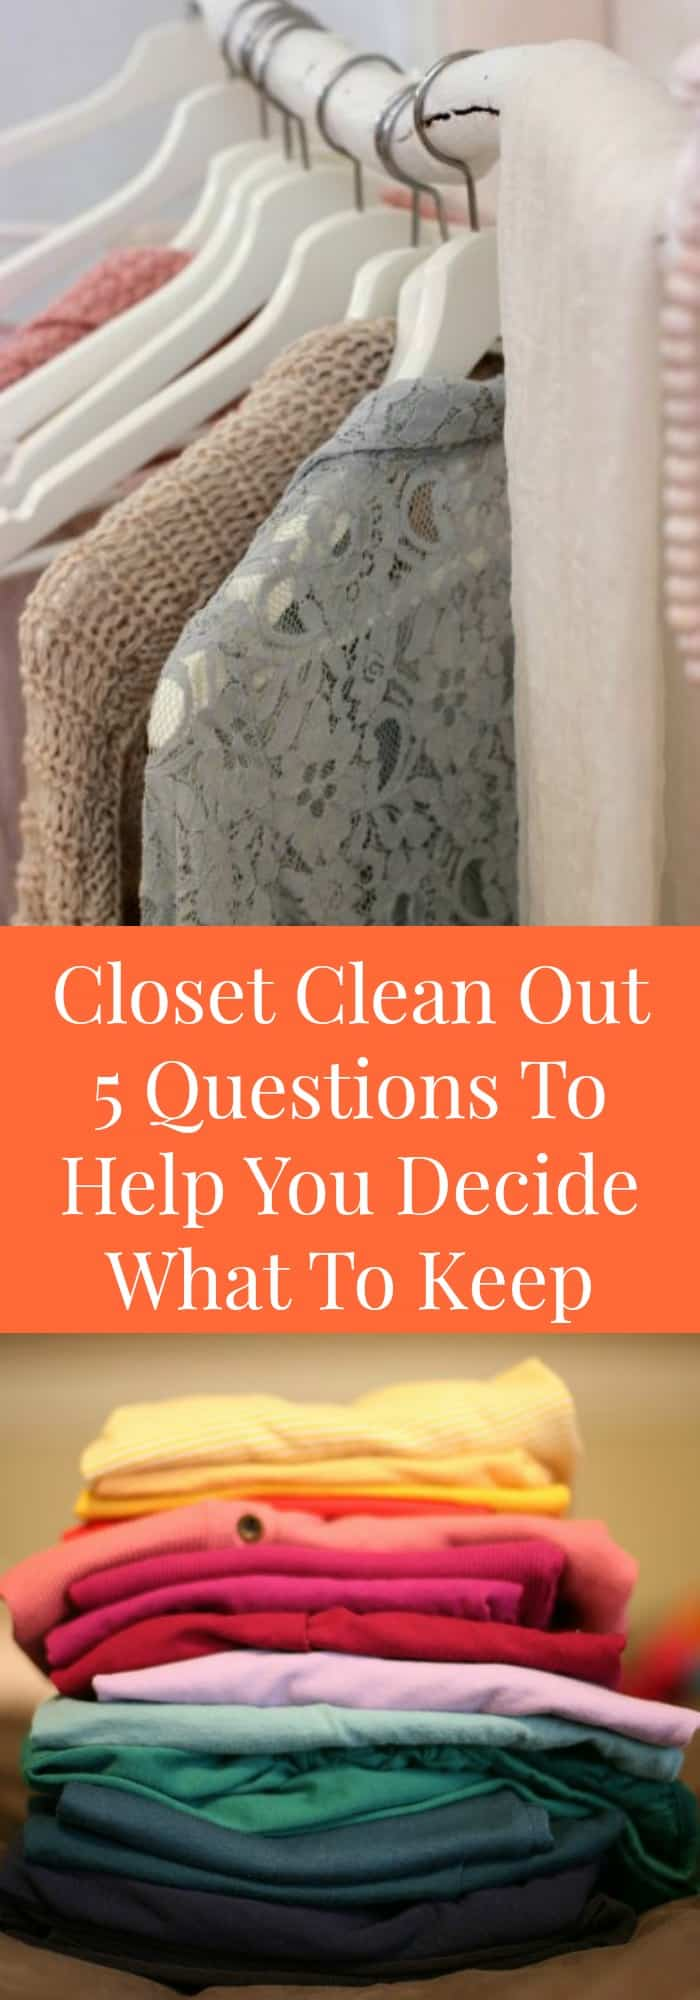 Organization--Closet Clean Out-5 Questions to Help You Decide What to Keep--The Organized Mom